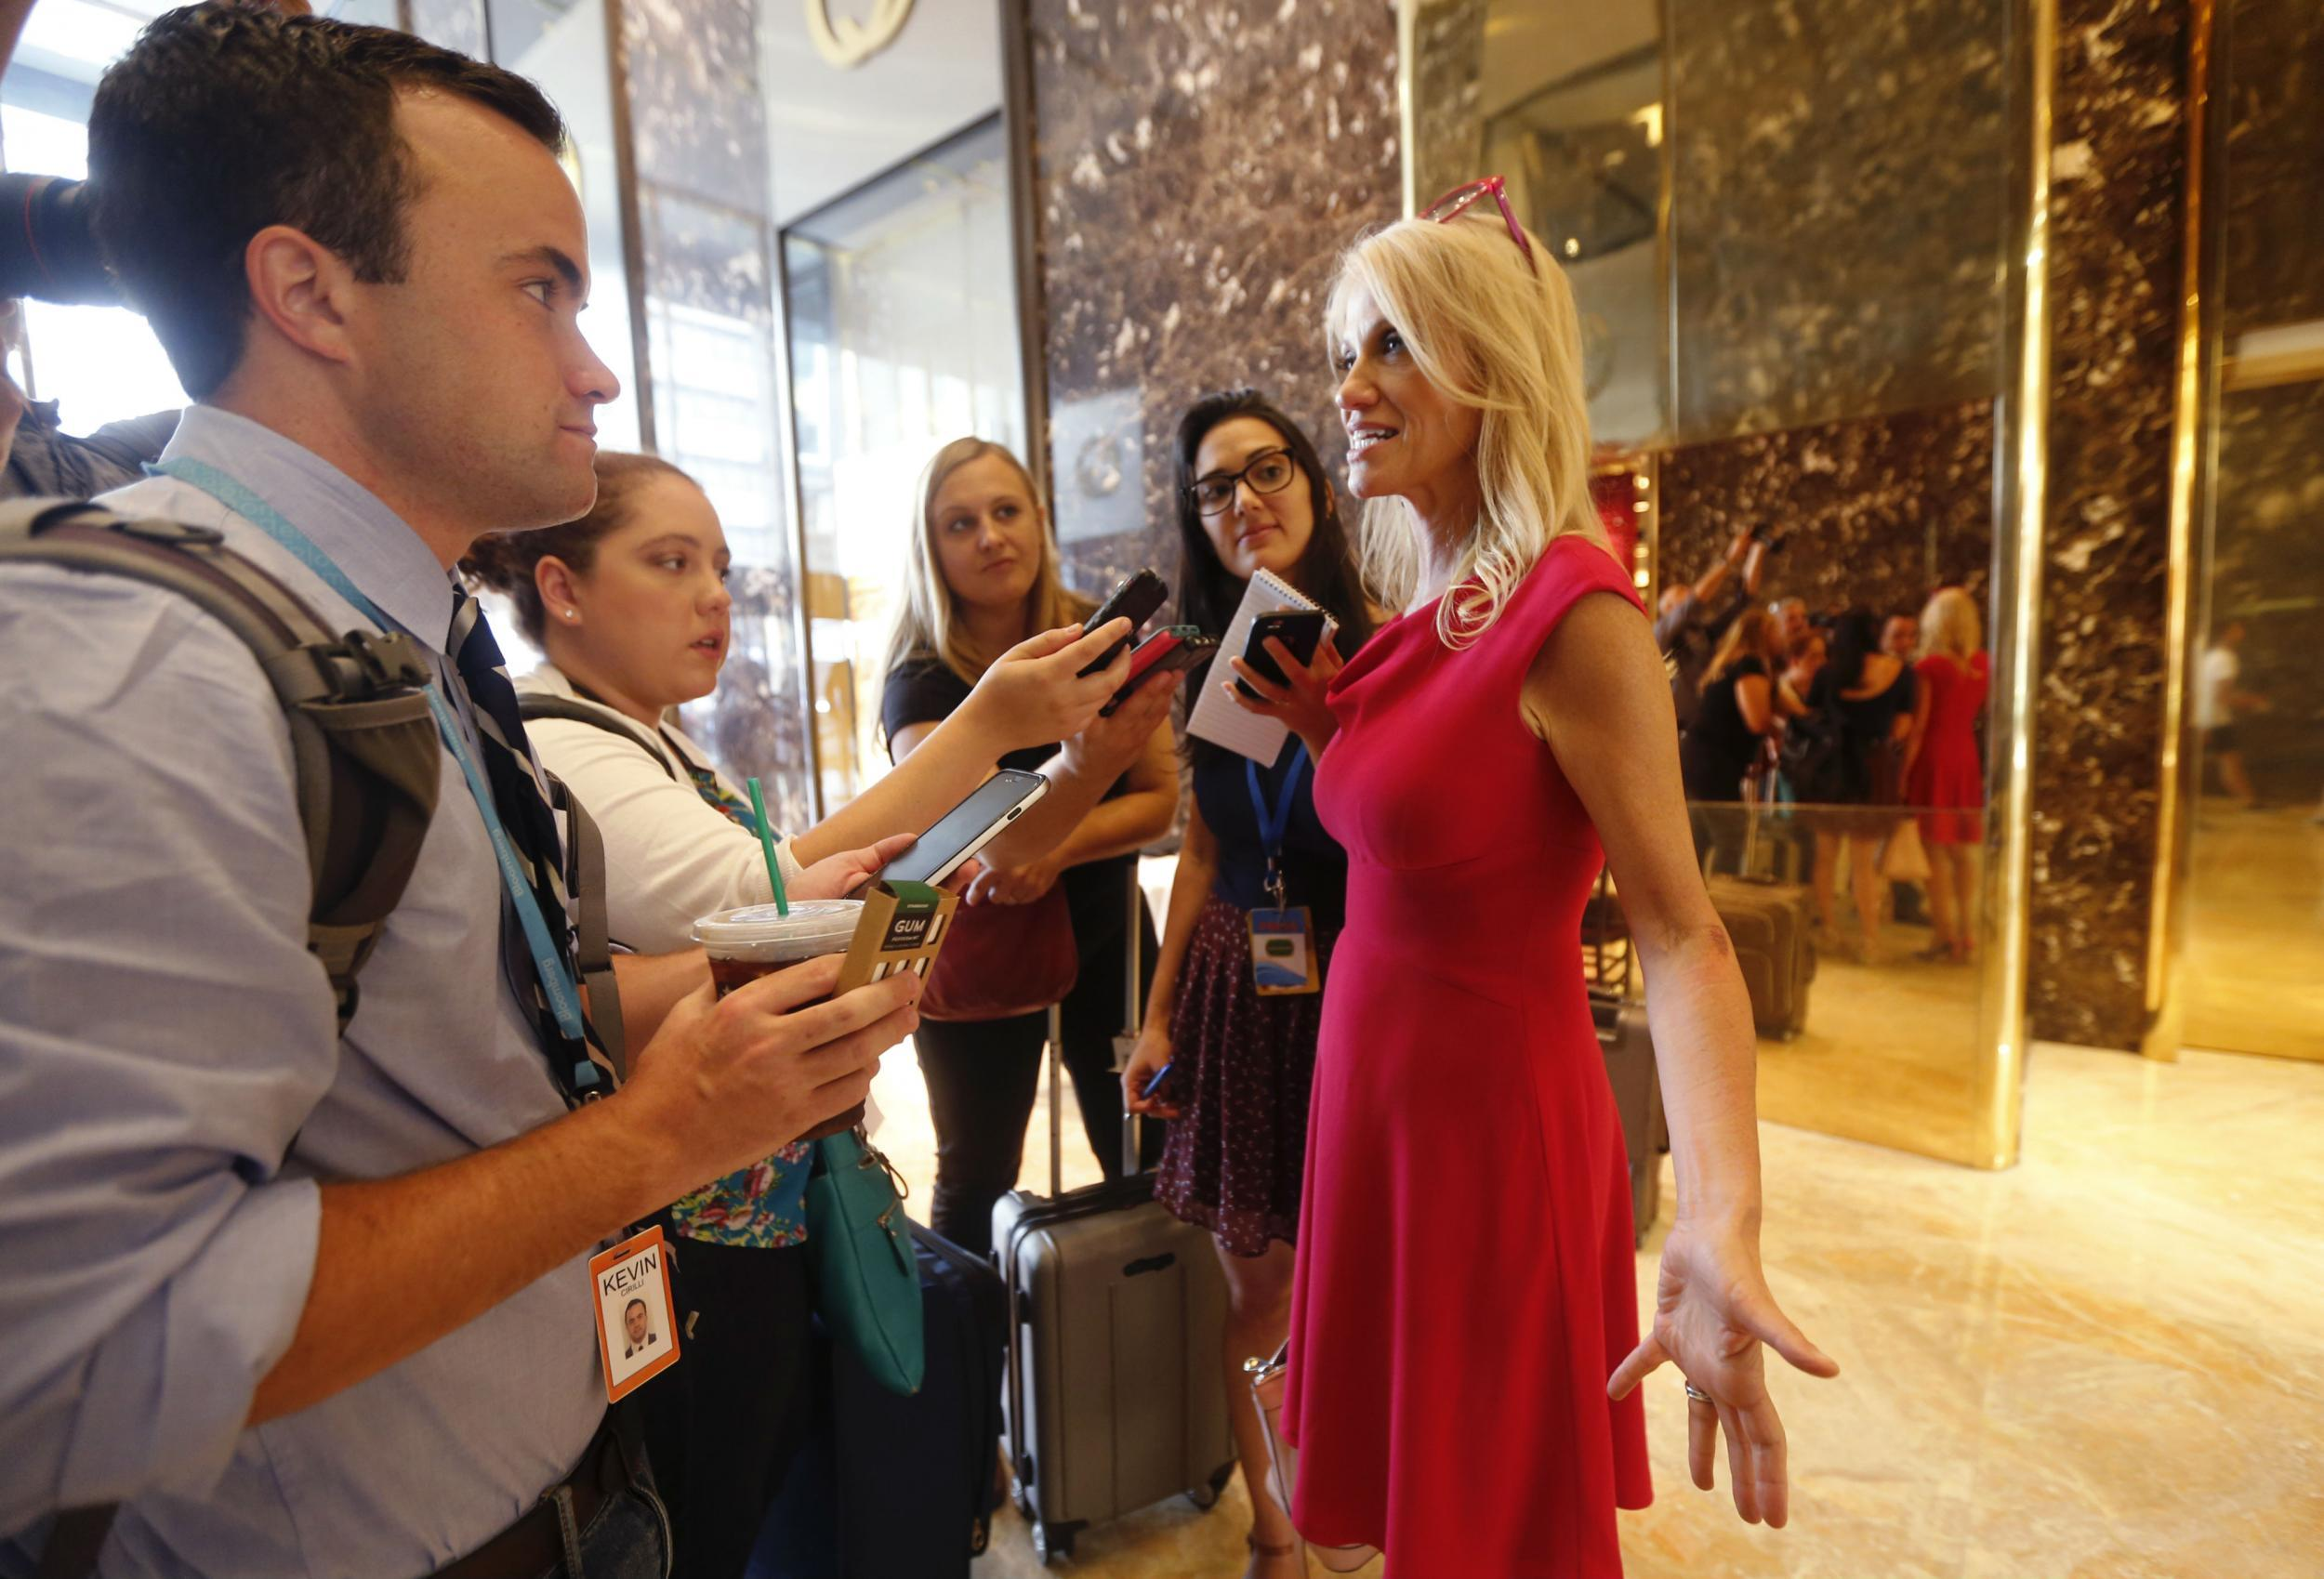 Donald Trump s campaign manager Kellyanne Conway said rape would